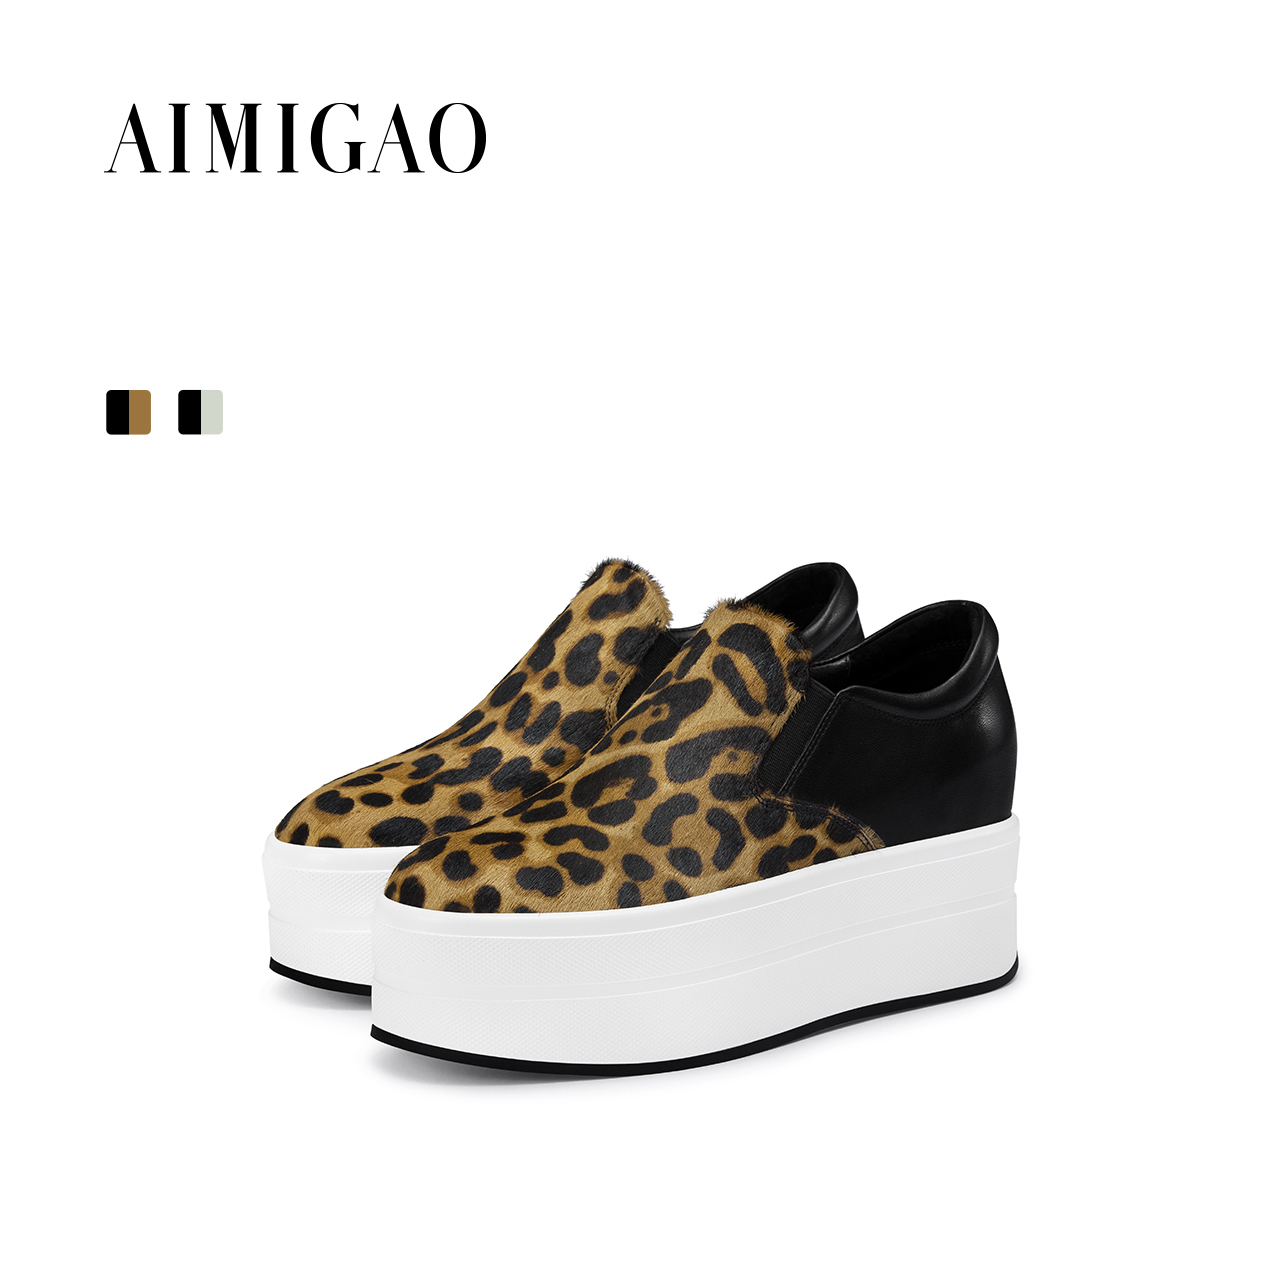 AIMIGAO autumn leopard casual Loafers shoes flat platform women casual shoes 2017 new comfortable thick bottom height increasing fashion tassels ornament leopard pattern flat shoes loafers shoes black leopard pair size 38